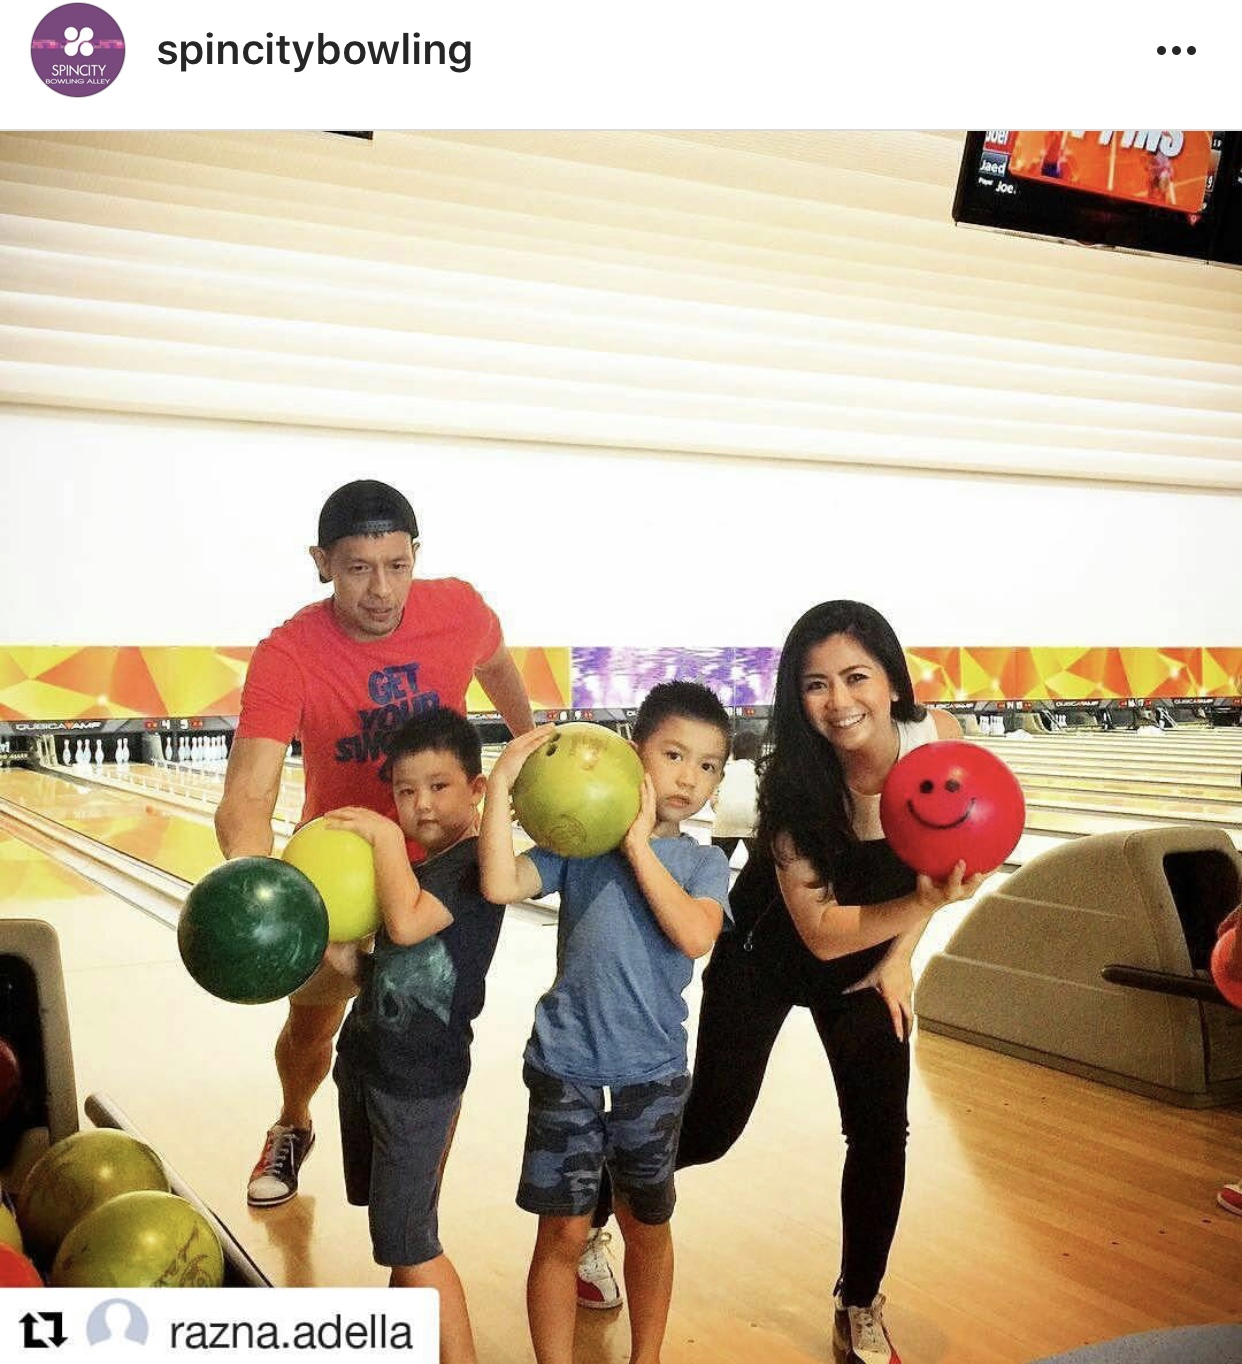 liburananak_spincitybowlingalley